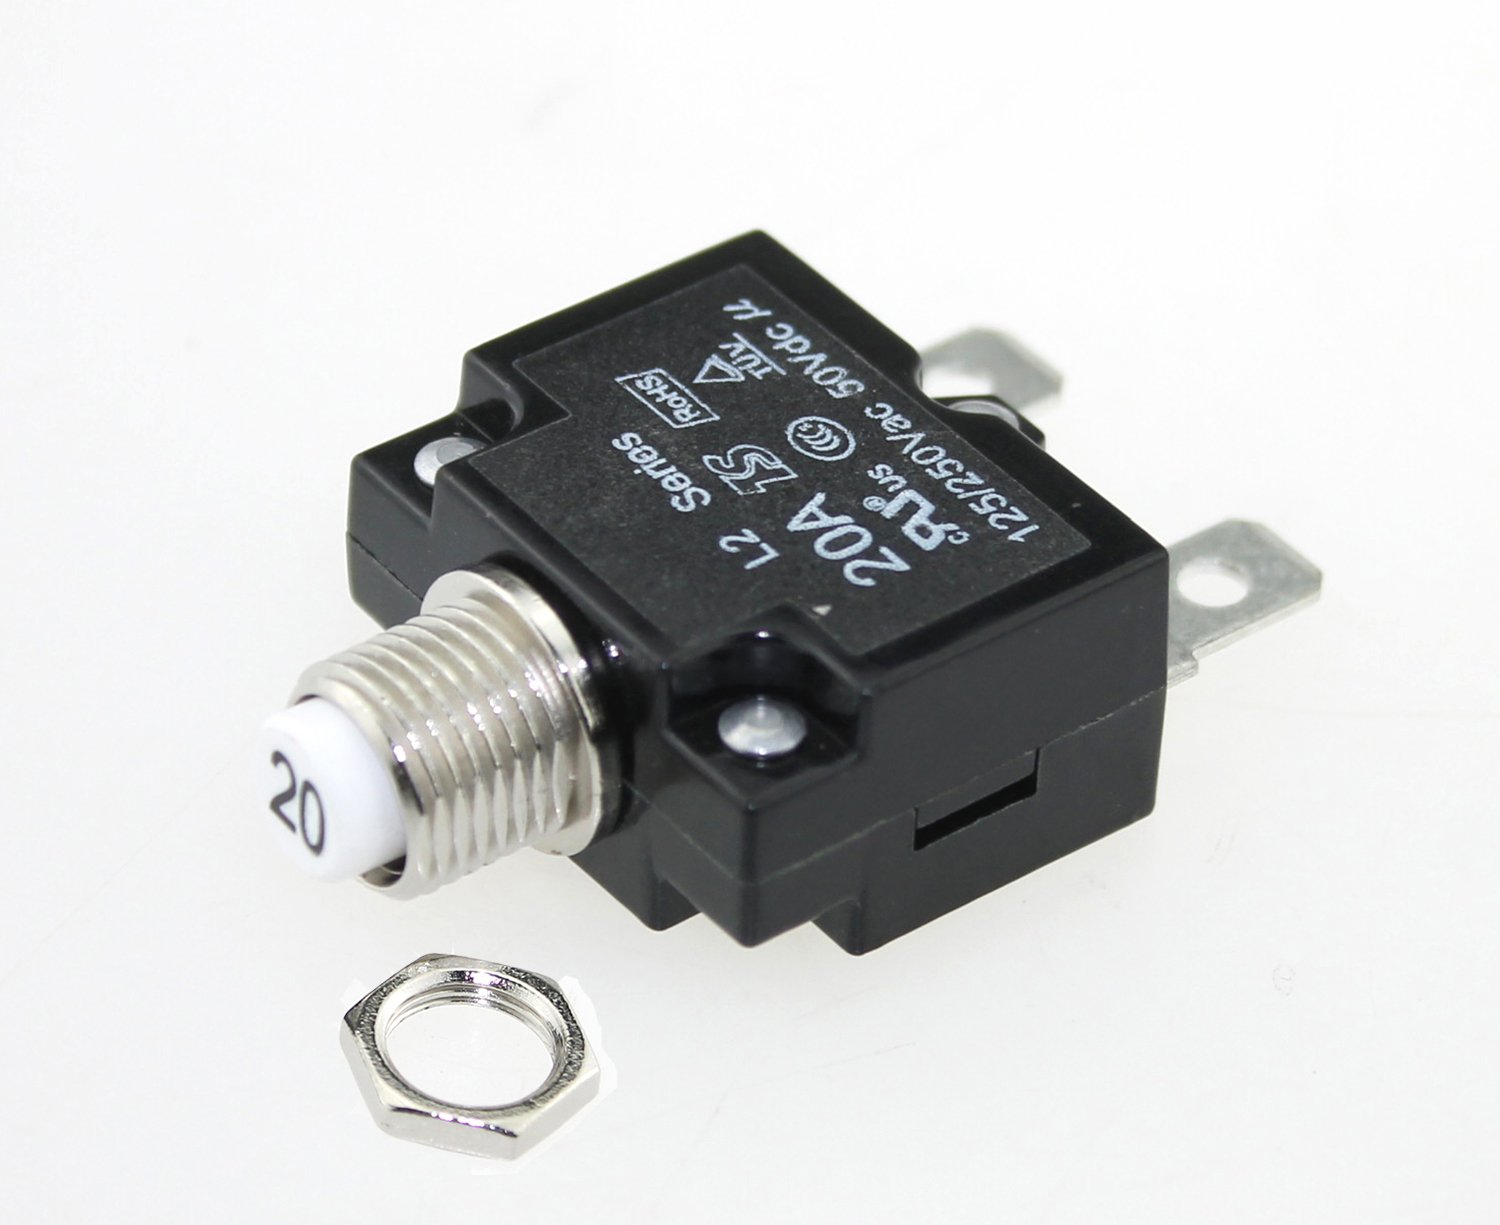 iztor Push Button Reset 20A Circuit Breakers with Quick Connect Terminals